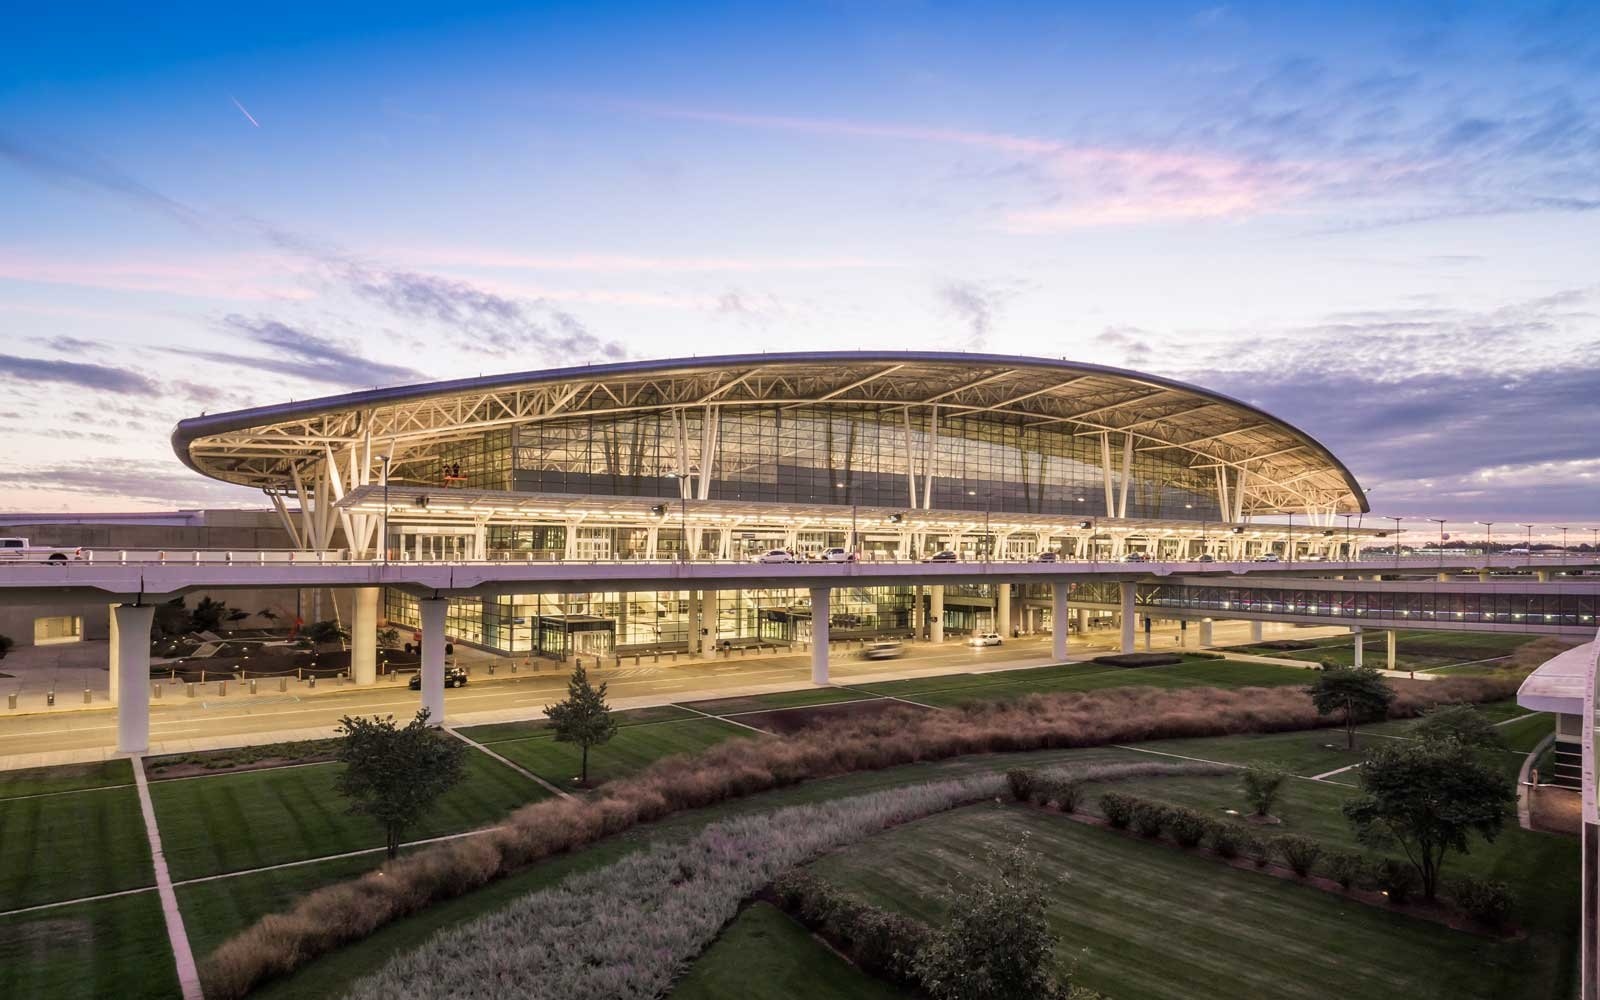 Indianapolis International Airport in Indiana